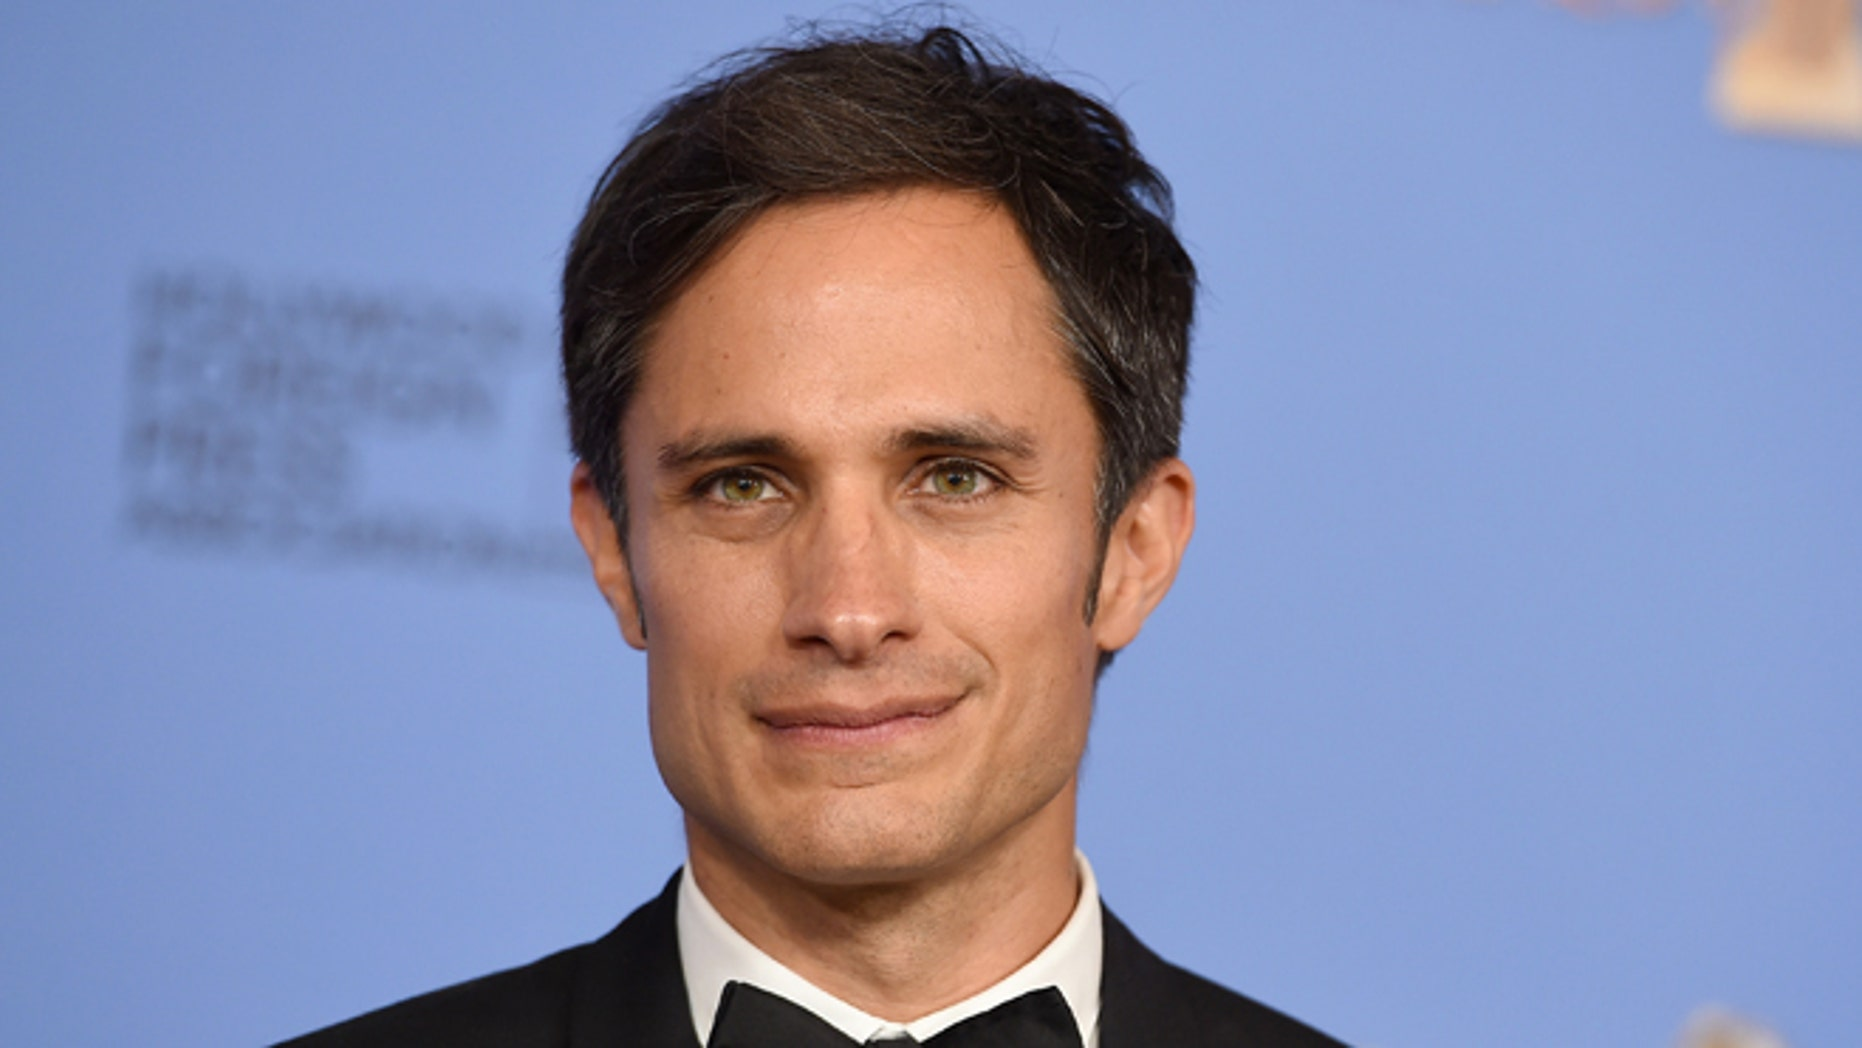 FILE - In this Jan. 10, 2016 file photo, Gael García Bernal poses in the press room after winning the award for best actor in a television series - musical or comedy for Mozart in the Jungle at the 73rd annual Golden Globe Awards in Beverly Hills, Calif. (Photo by Jordan Strauss/Invision/AP, File)